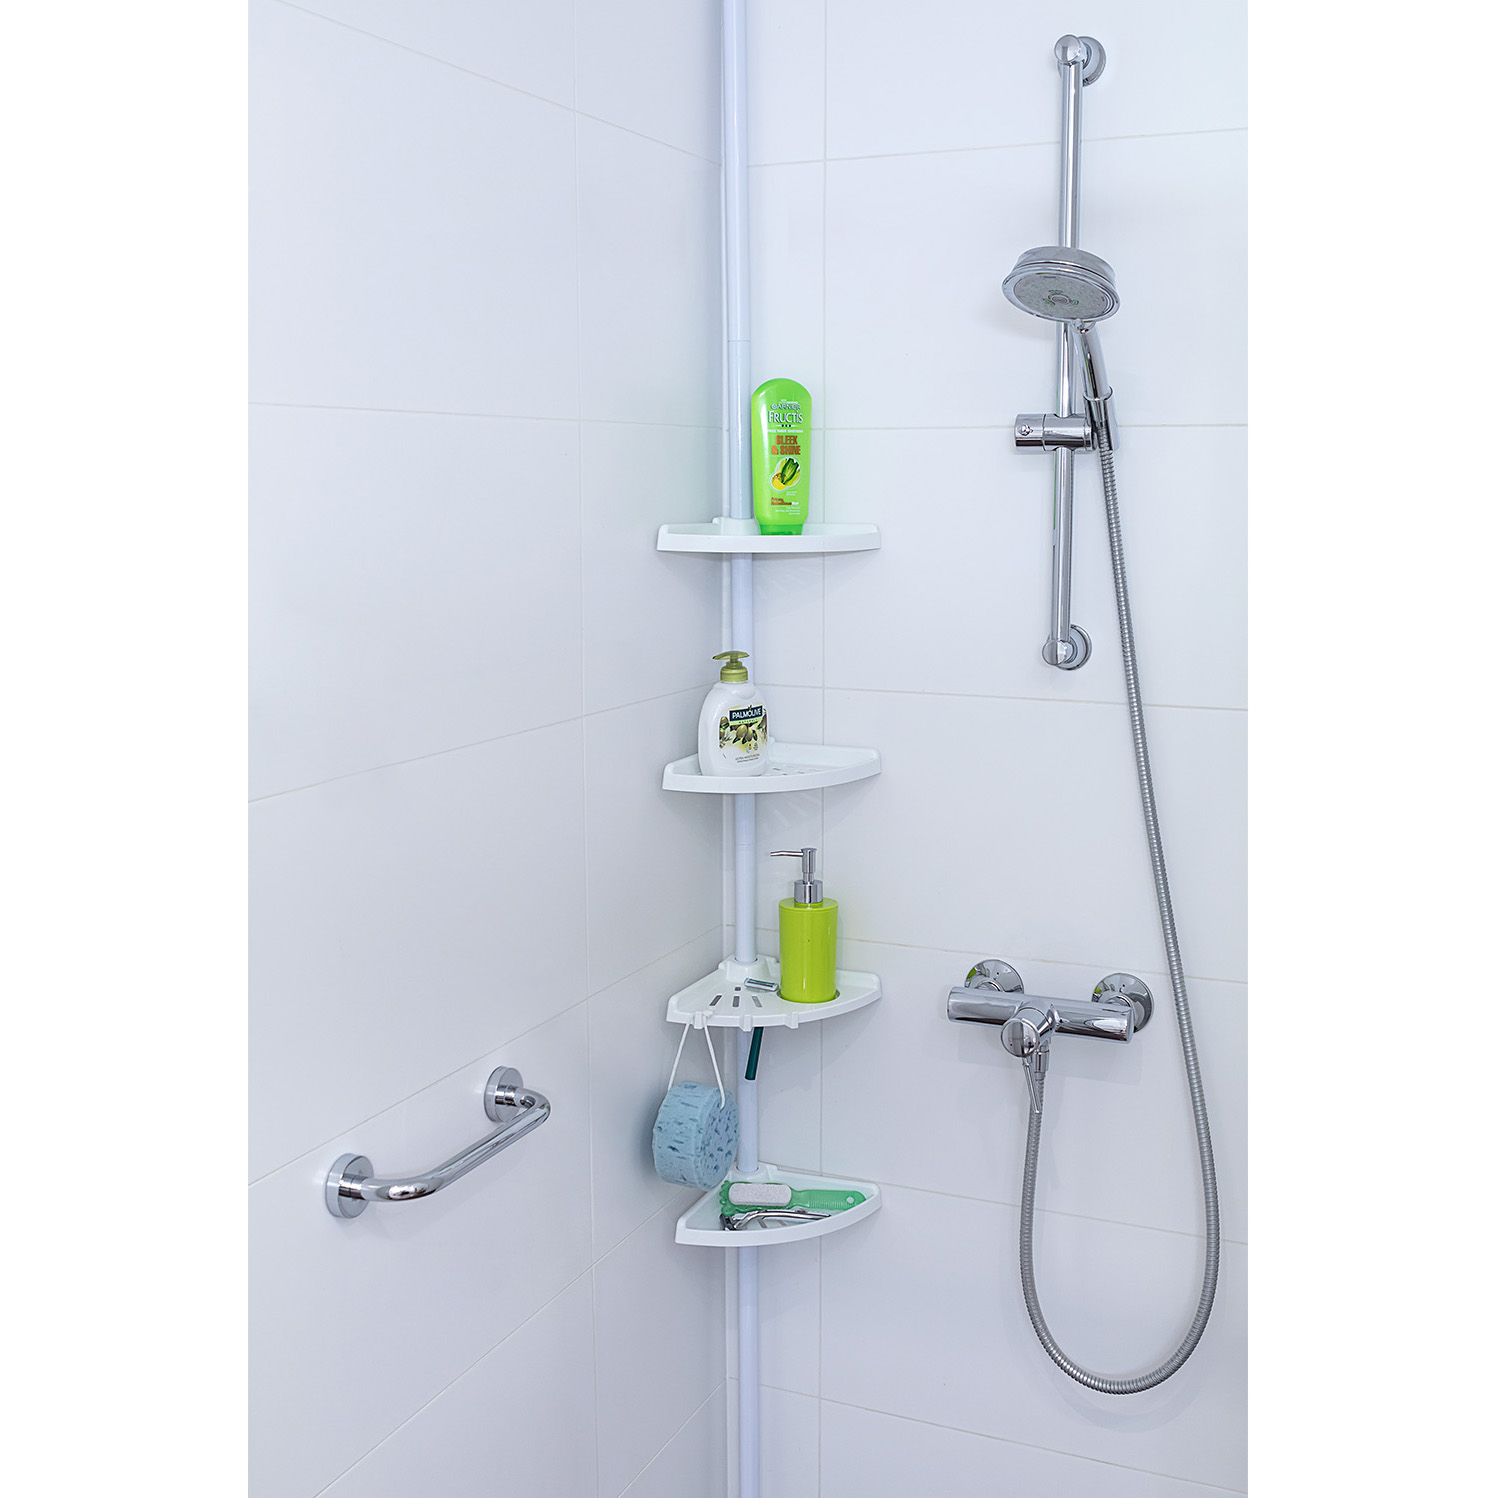 Tatkraft Mate Telescopic Corner Bathroom Shelves 26.5X17X110-255H cm ...